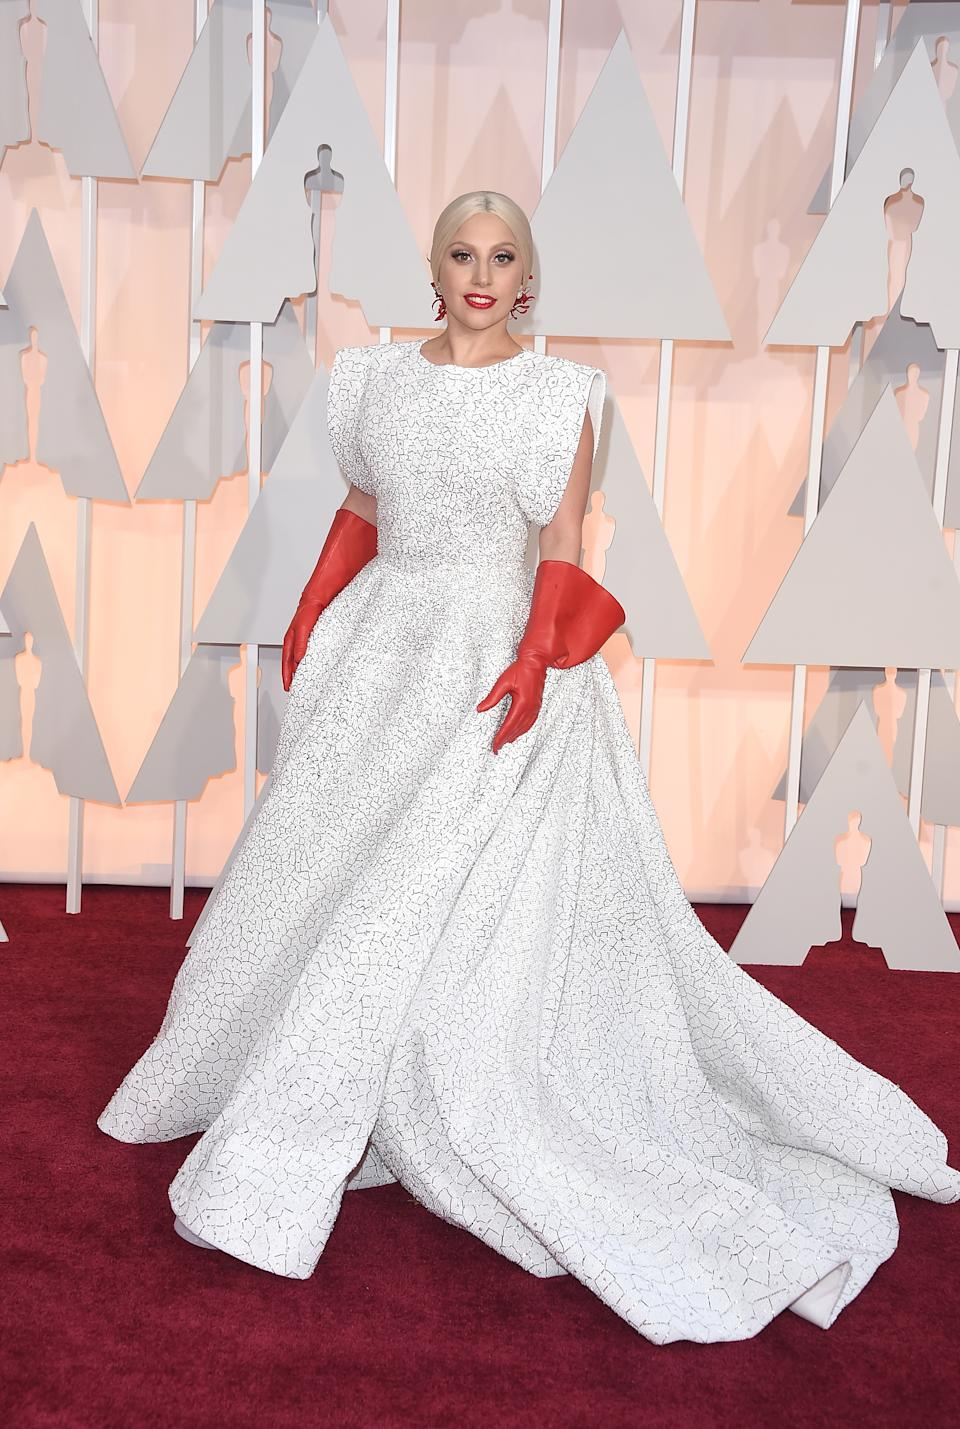 "<p>Years before she took home a statue of her own, Gaga made her Oscar debut in a billowing white gown with bizarre red leather gloves. The look spawned countless memes, but Gaga redeemed herself later that night with a show-stopping performance of ""The Sound of Music.""</p>"